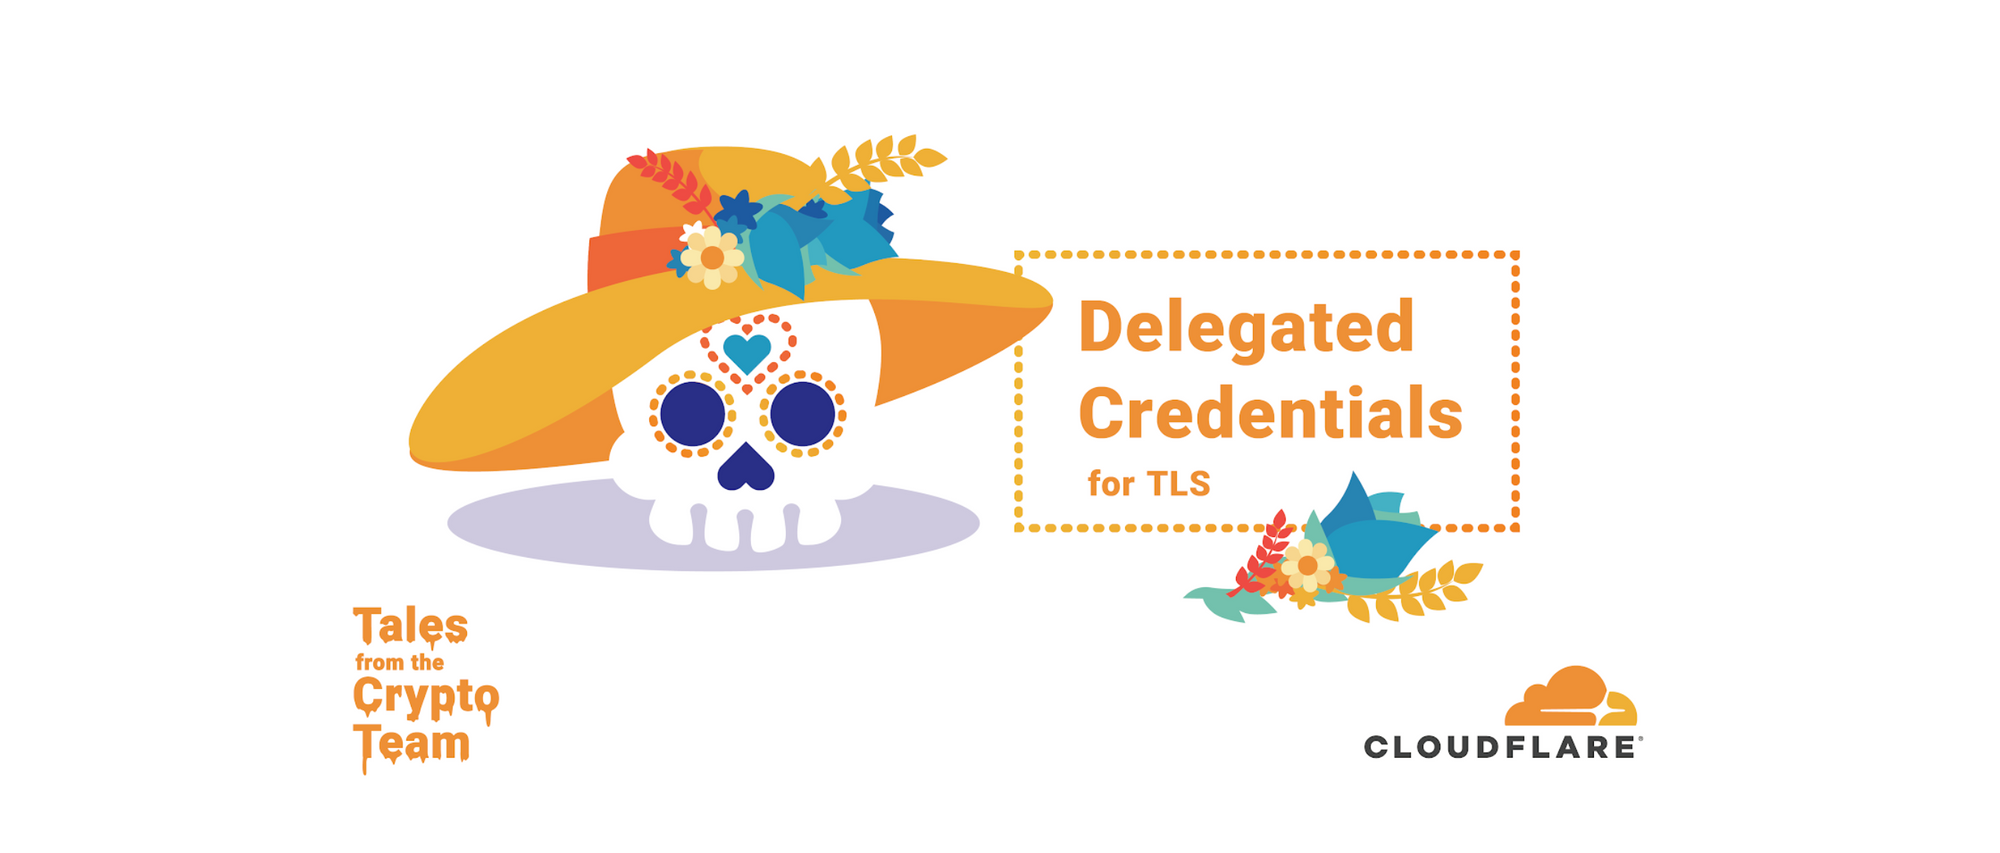 Delegated Credentials for TLS